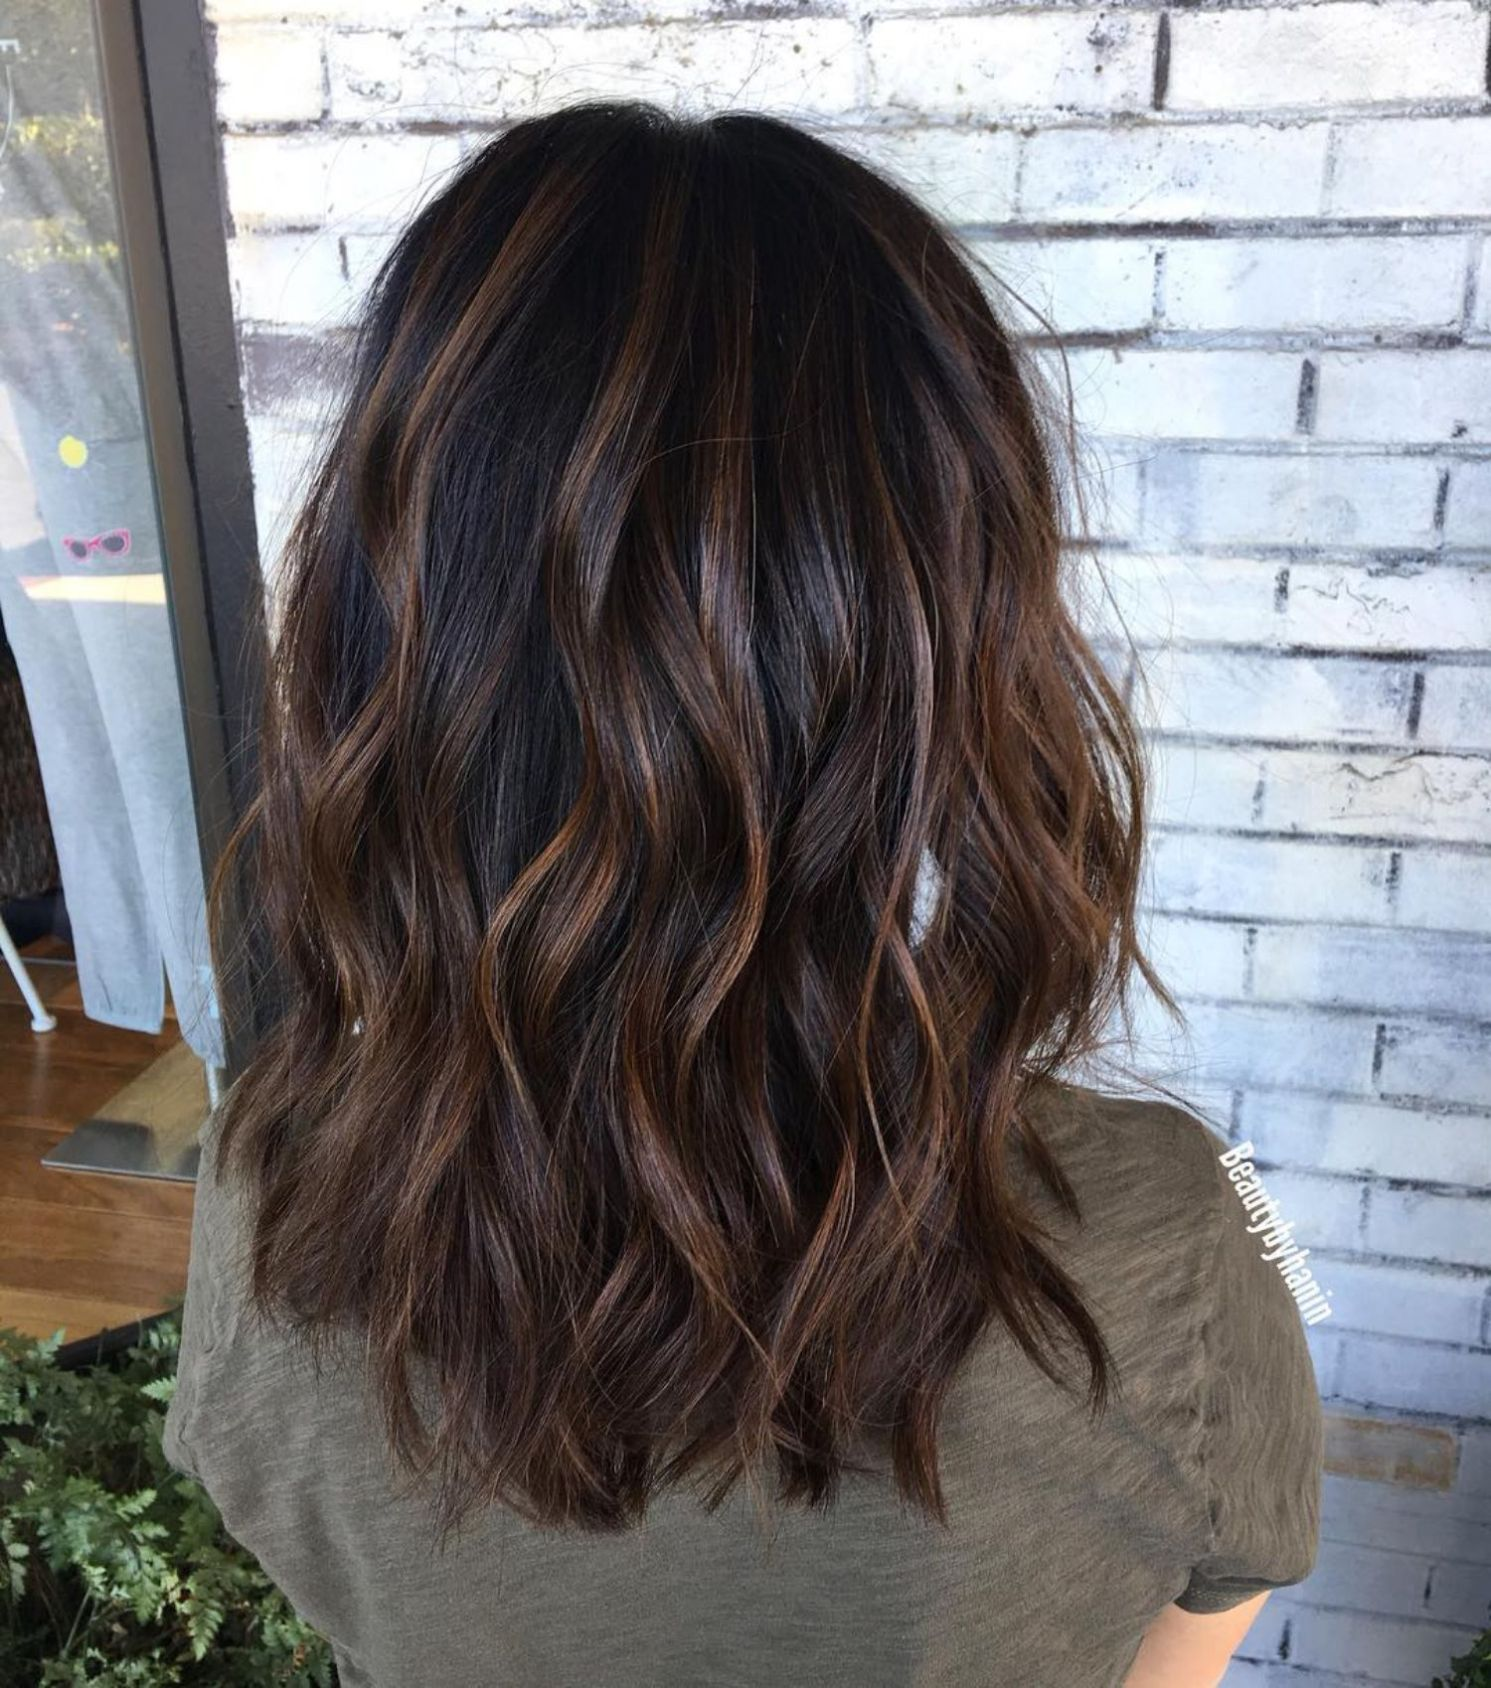 11 hair Layered balayage ideas